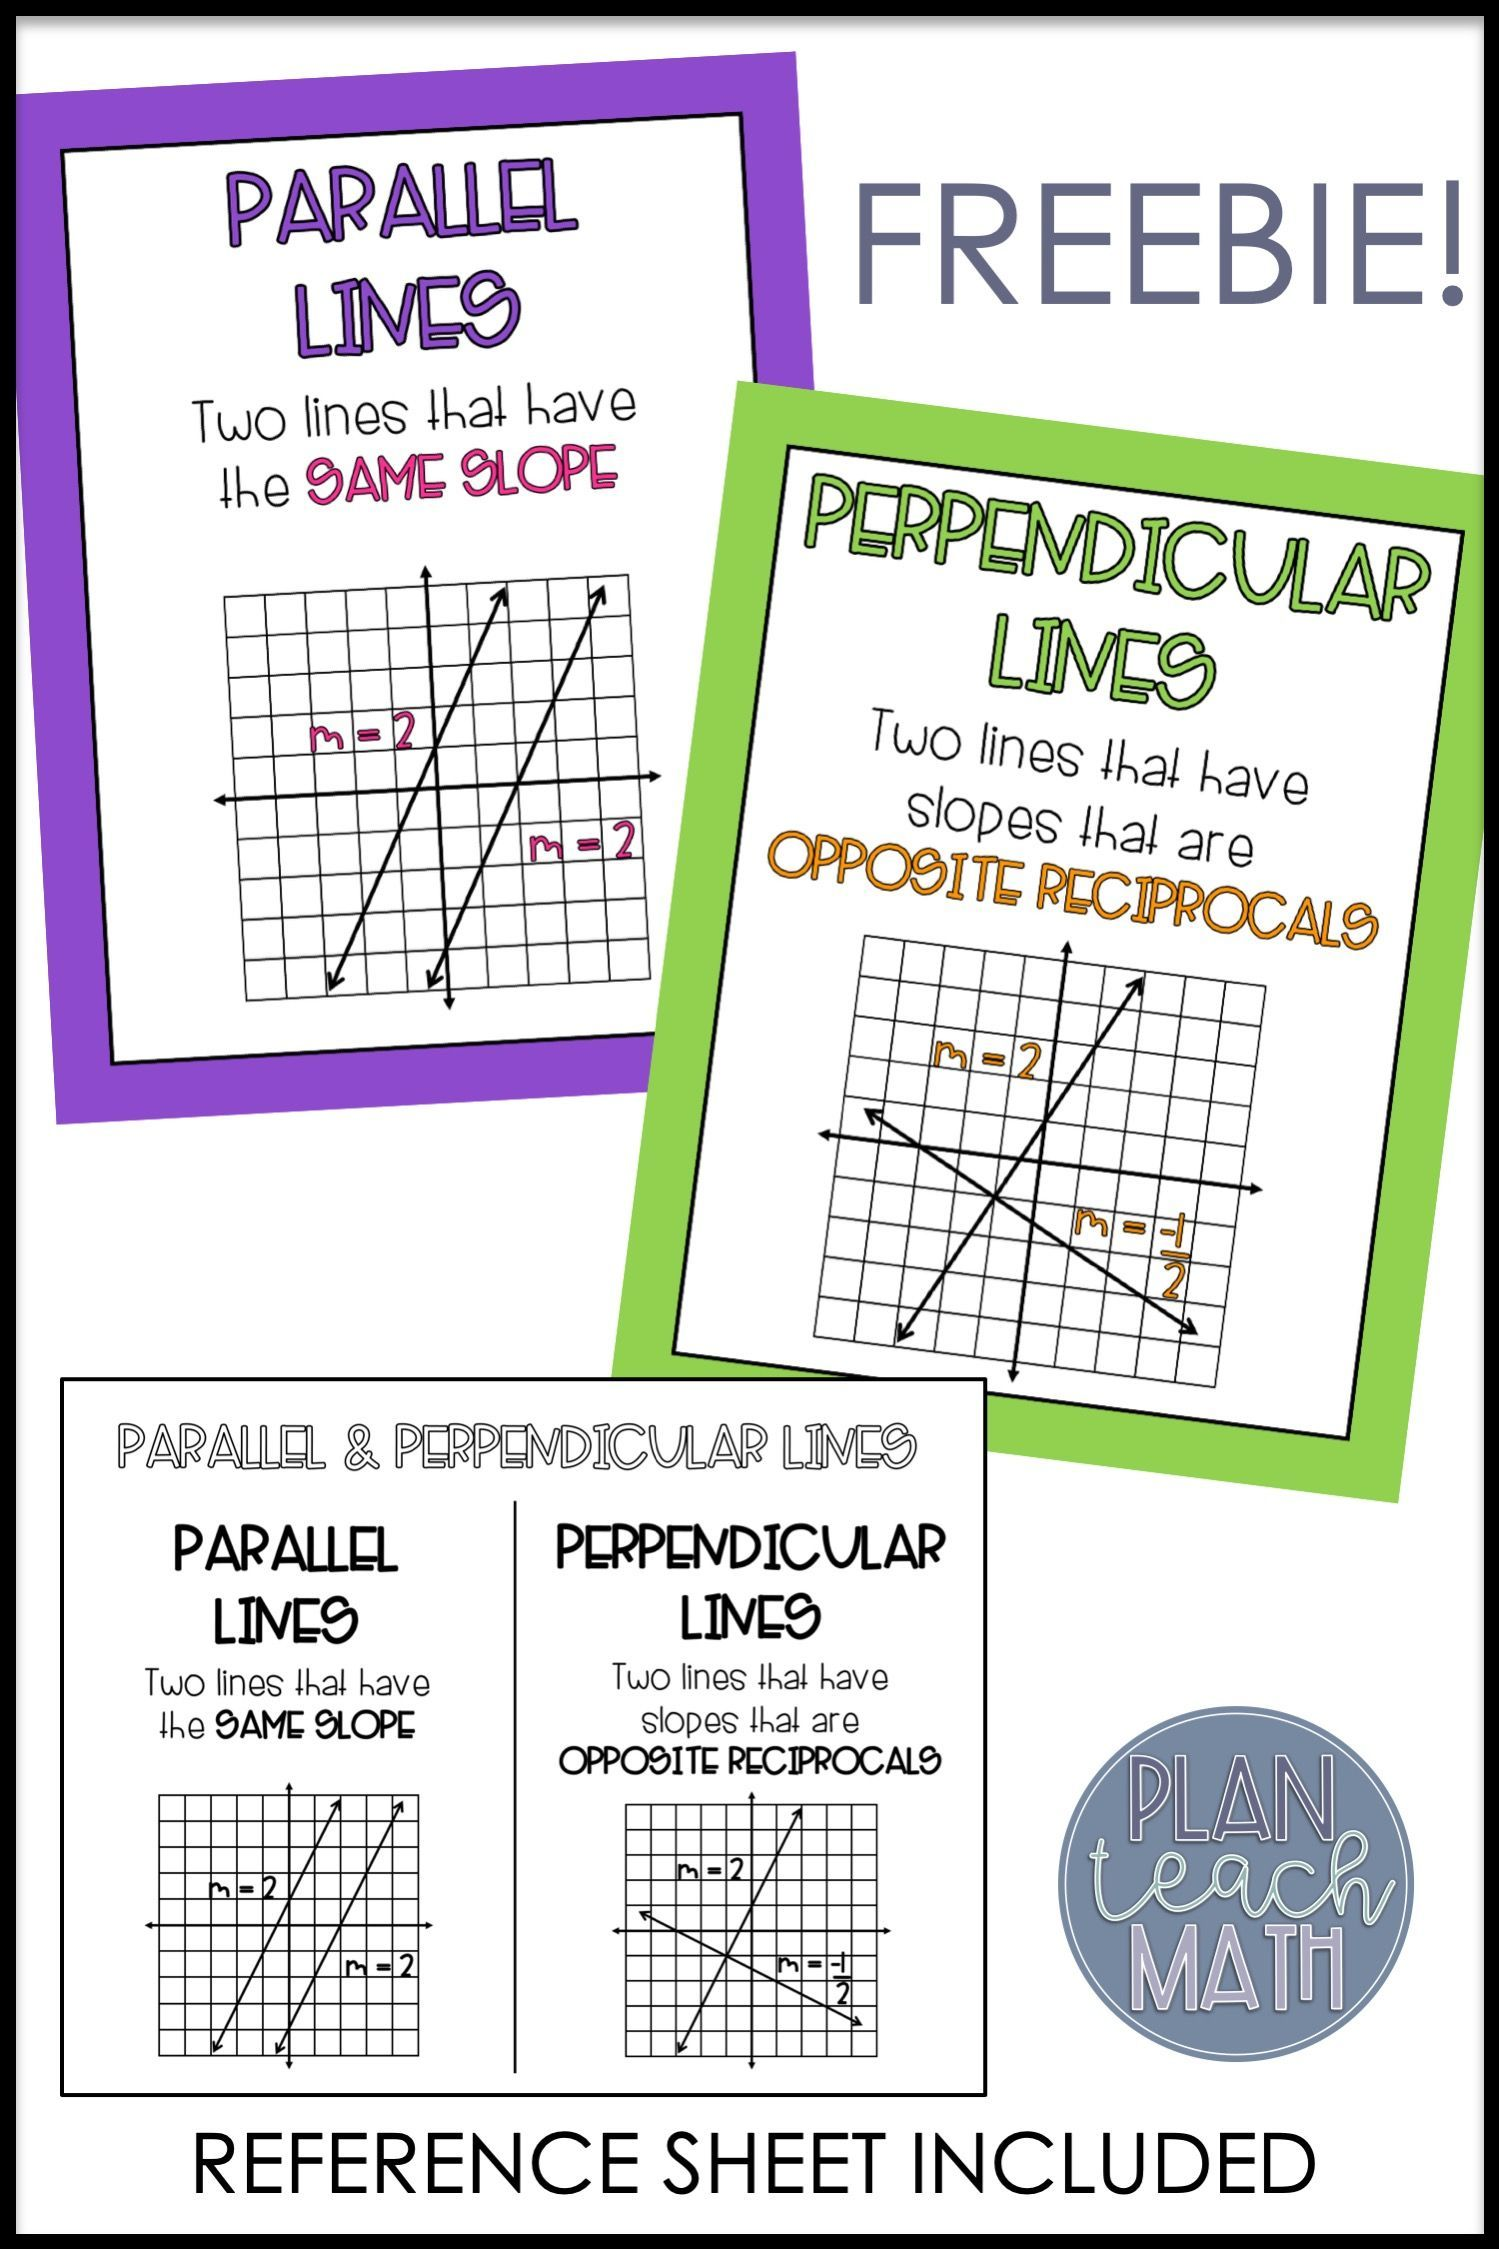 Parallel Amp Perpendicular Lines Posters And Reference